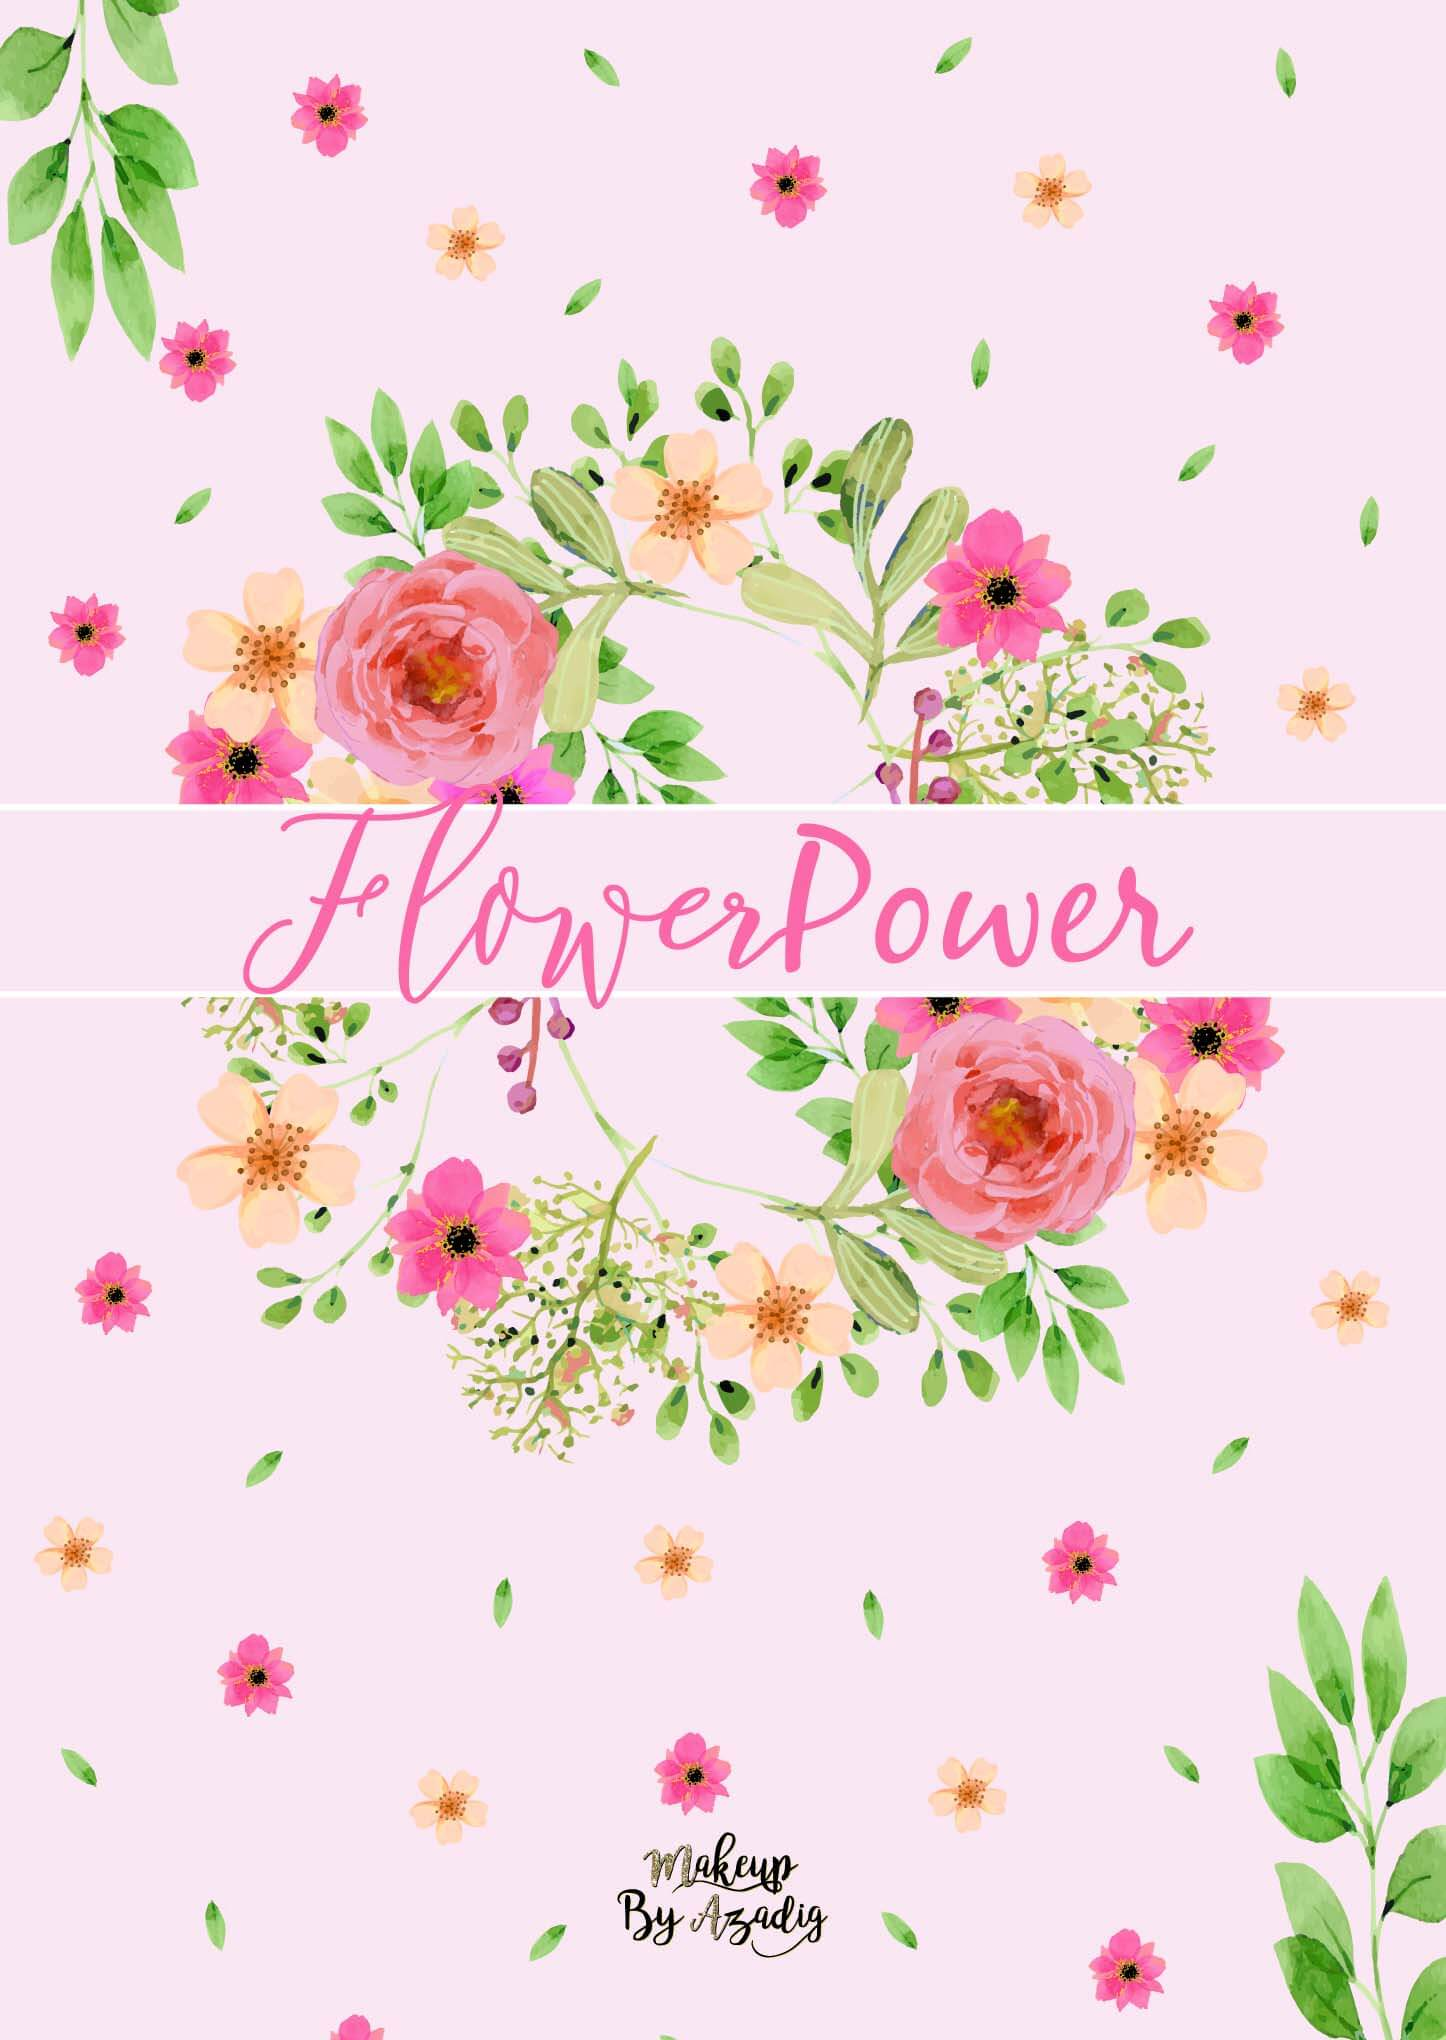 fond-decran-wallpaper-printemps-fleurs-flower-power-couronne-rose-girly-ipad-tablette-apple-makeupbyazadig-tendance